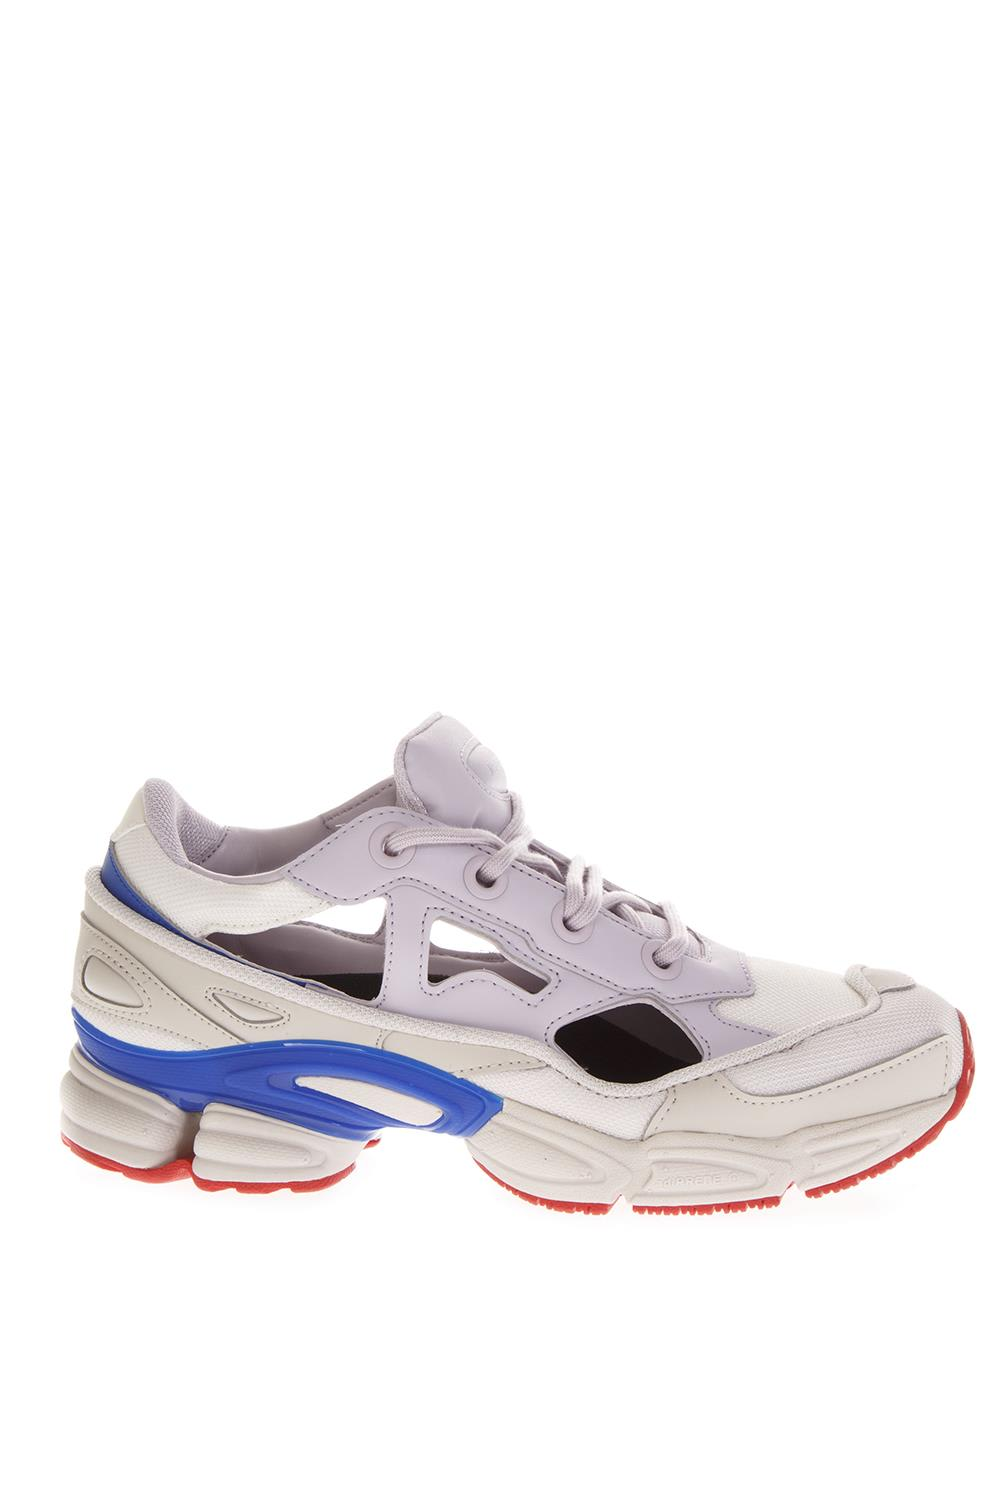 the latest 62f40 2bcd2 Adidas By Raf Simons White Replicant Ozweego Sneakers By Raf Simons